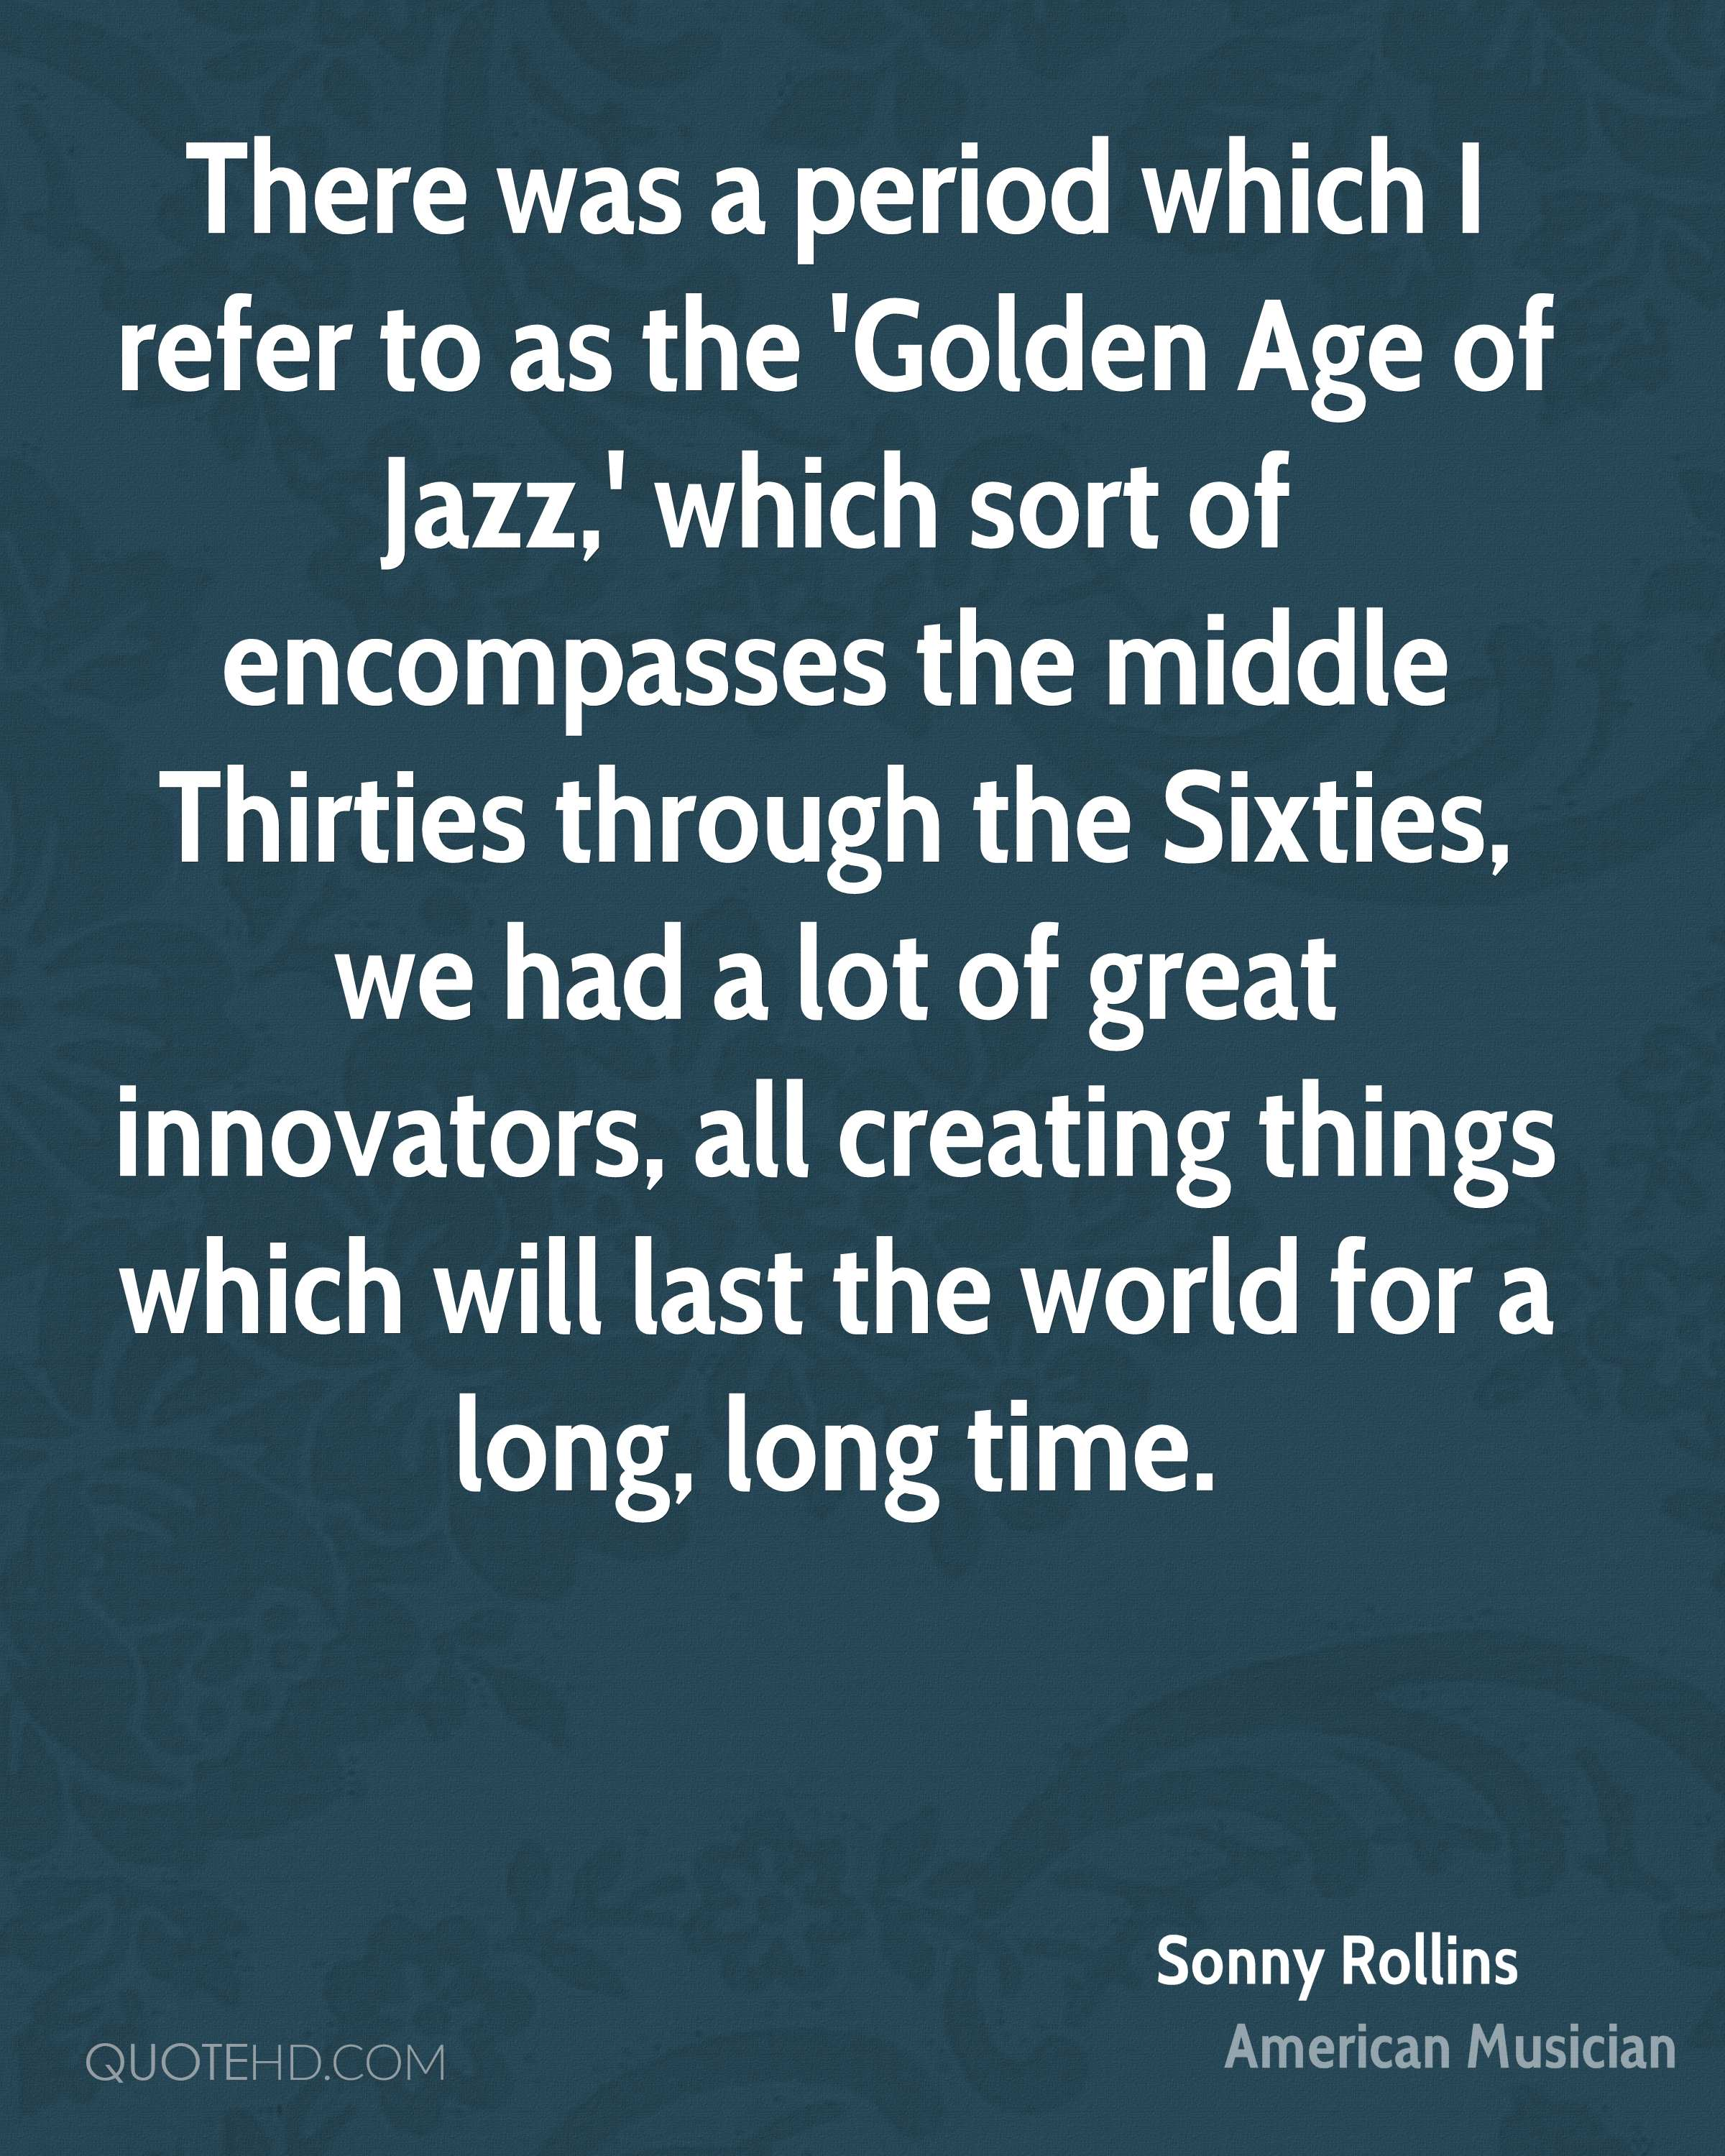 There was a period which I refer to as the 'Golden Age of Jazz,' which sort of encompasses the middle Thirties through the Sixties, we had a lot of great innovators, all creating things which will last the world for a long, long time.